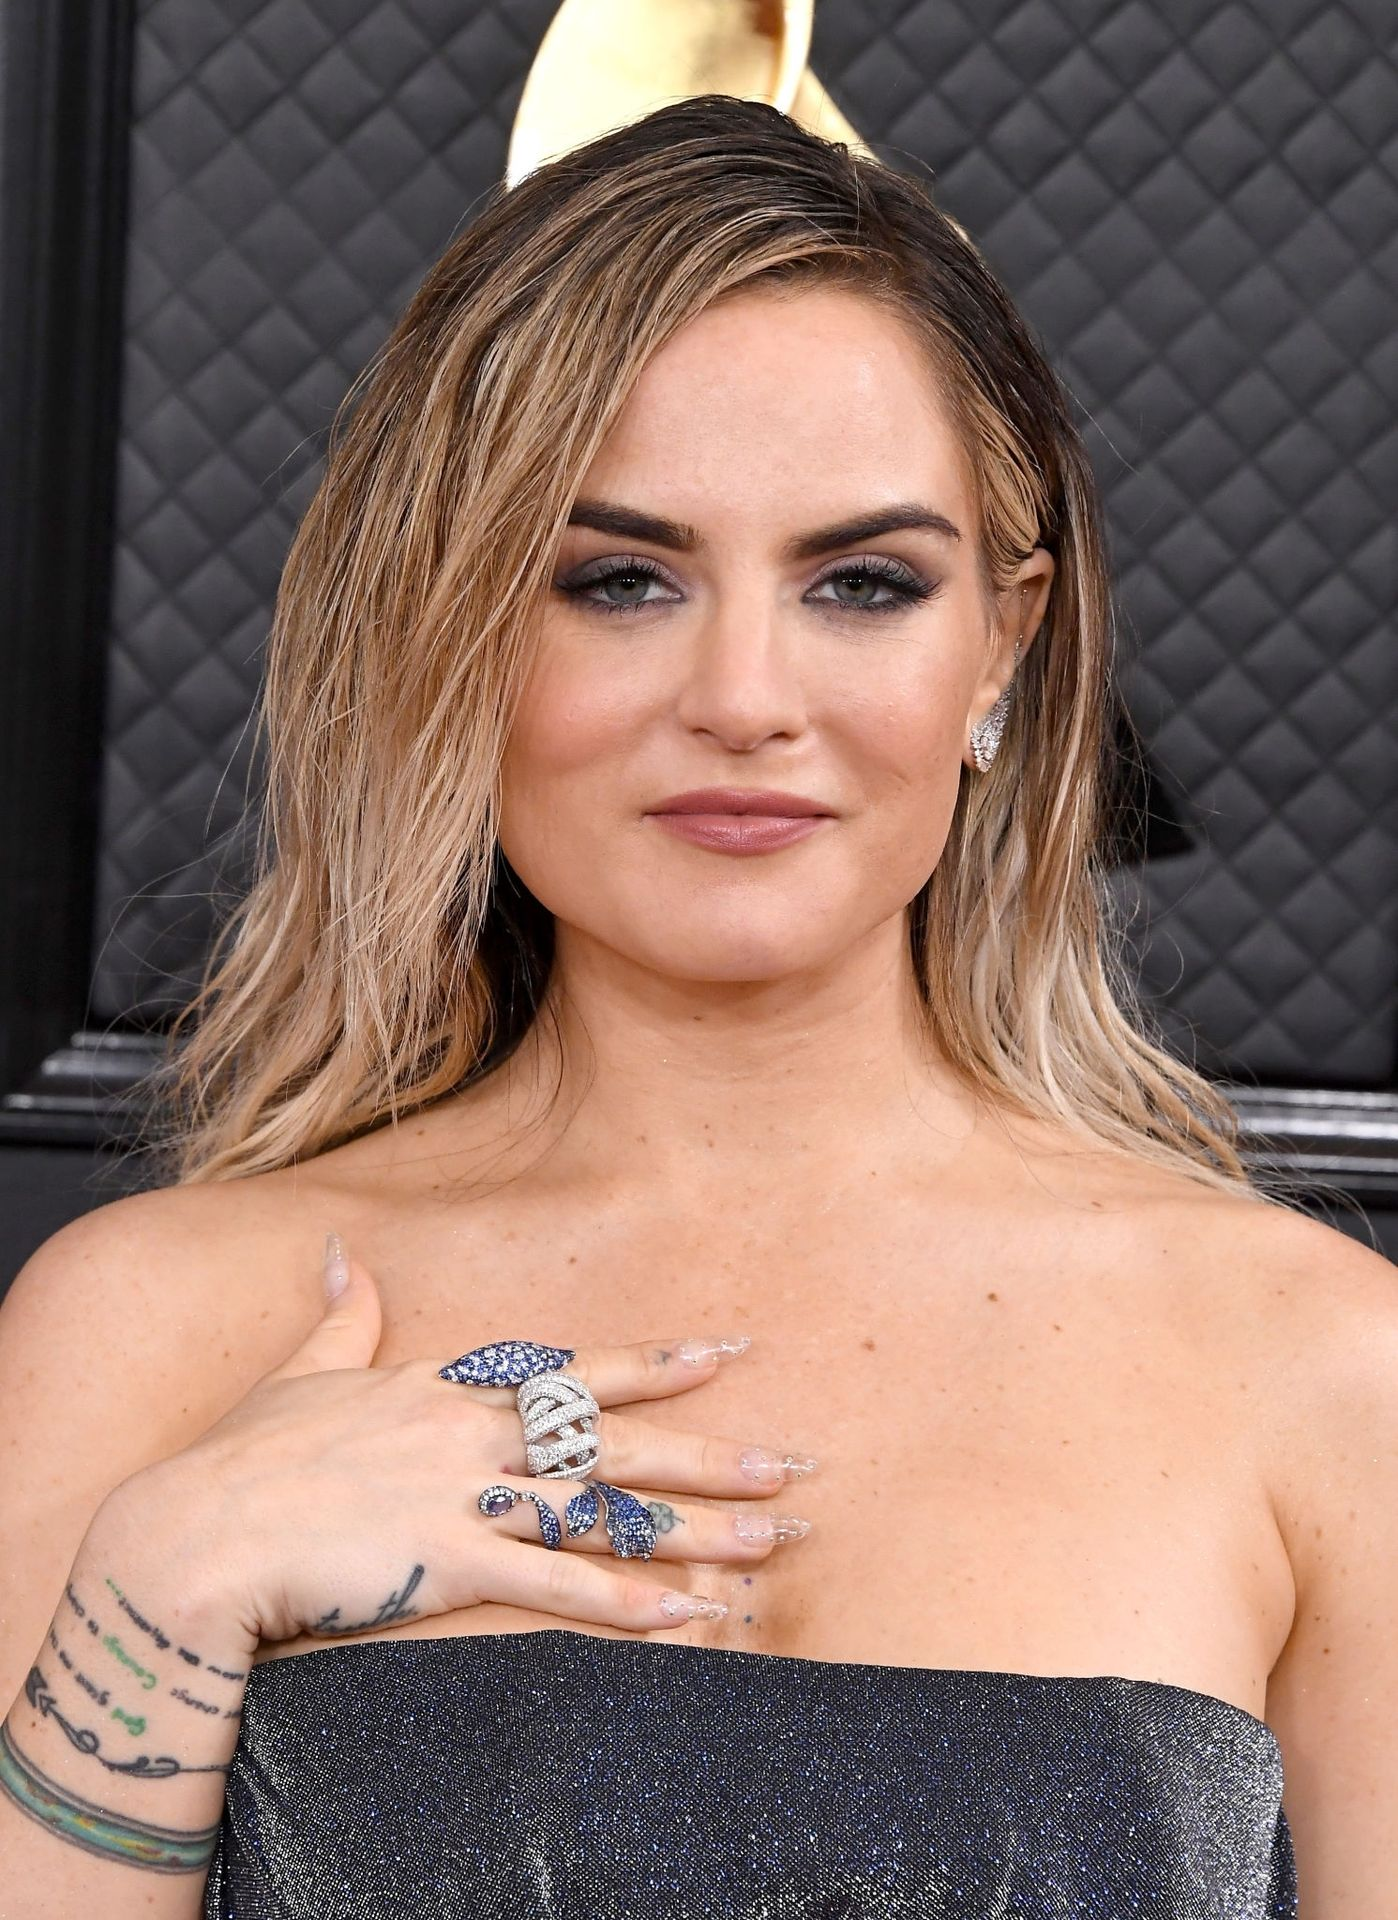 Jojo Shows Her Legs And Cleavage At The 62nd Annual Grammy Awards 0002